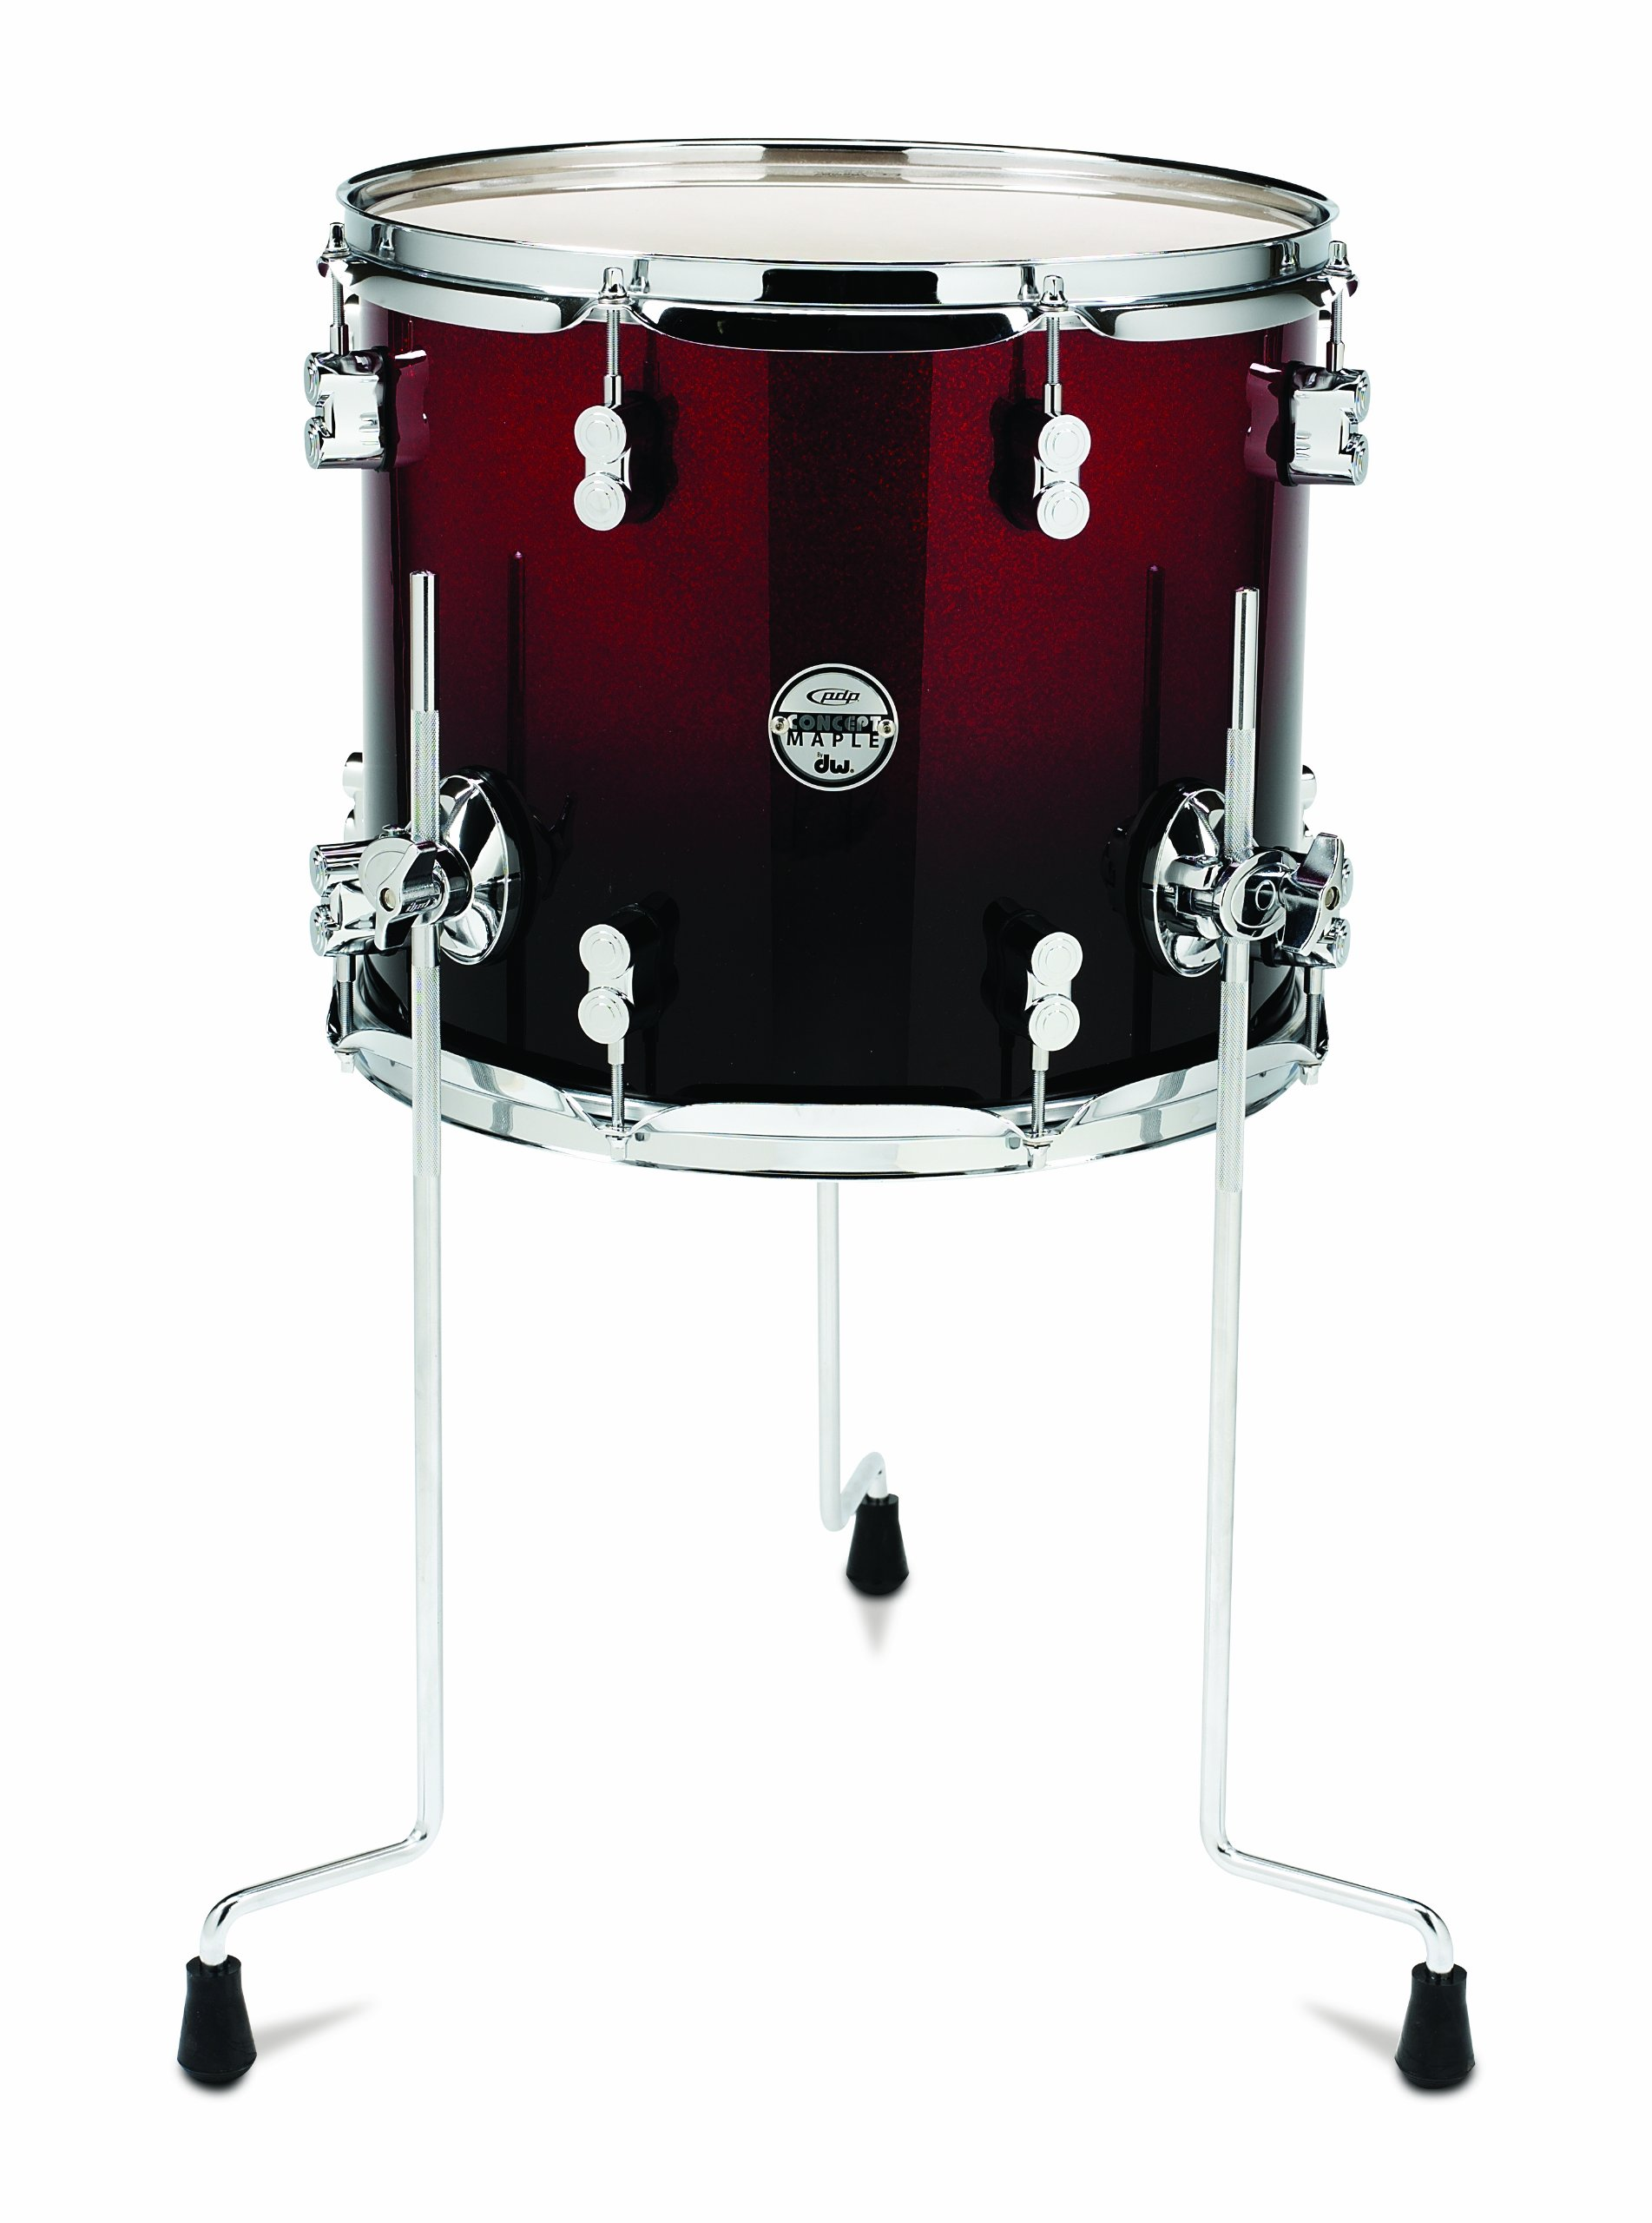 Pacific Drums PDCM1214TTRB 12 x 14 Inches Tom with Chrome Hardware - Red to Black Fade